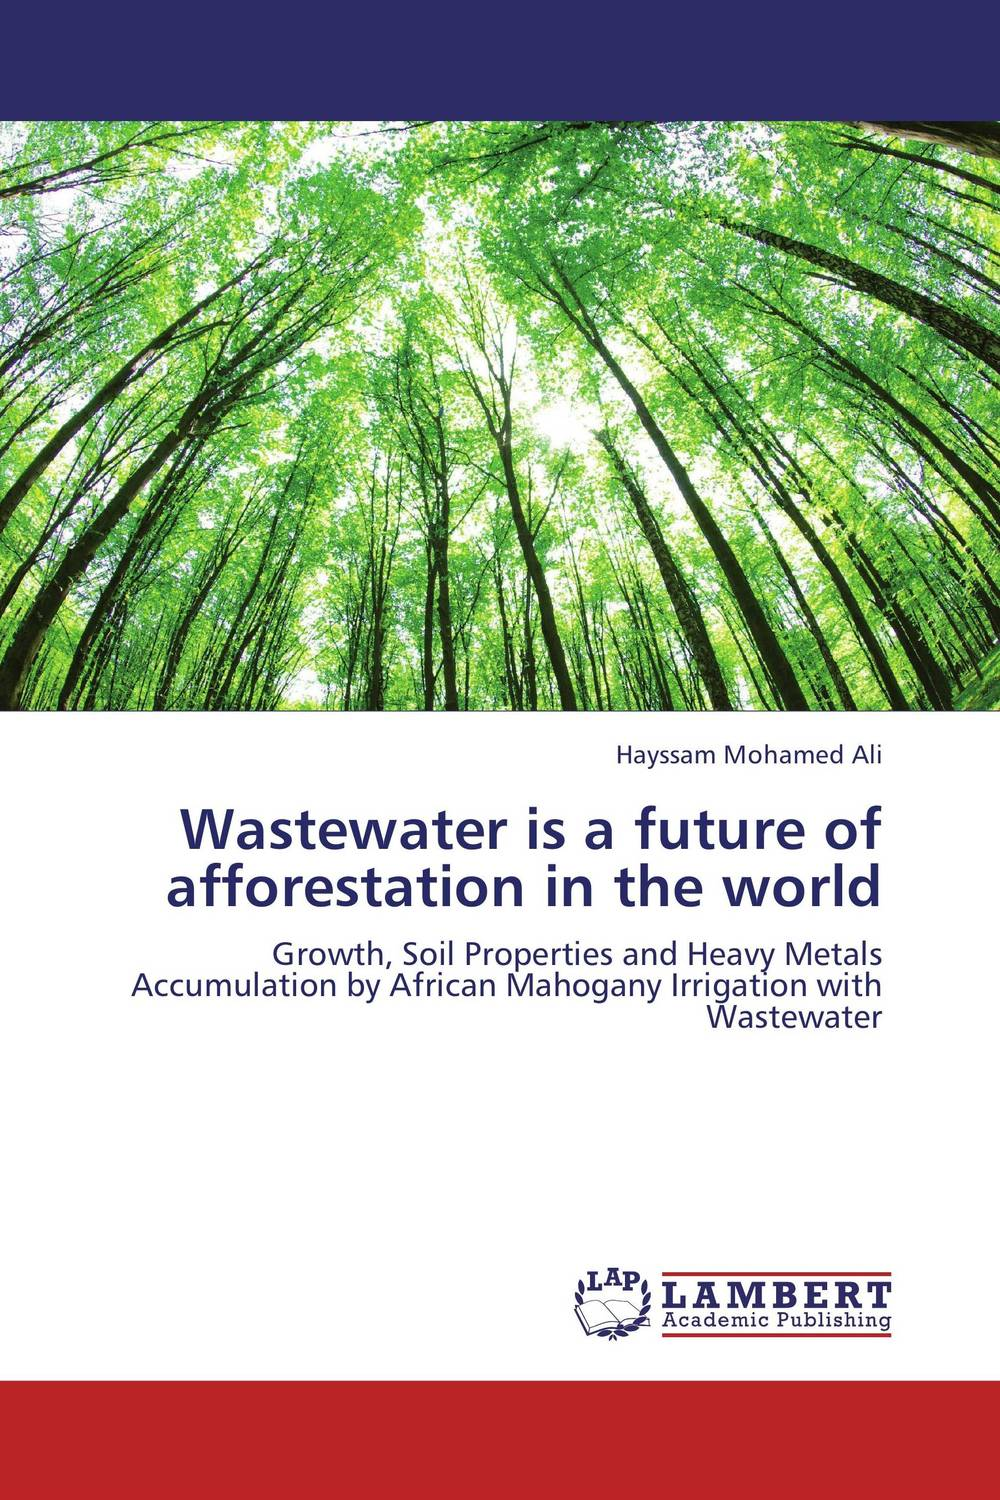 Wastewater is a future of afforestation in the world marwan a ibrahim effect of heavy metals on haematological and testicular functions